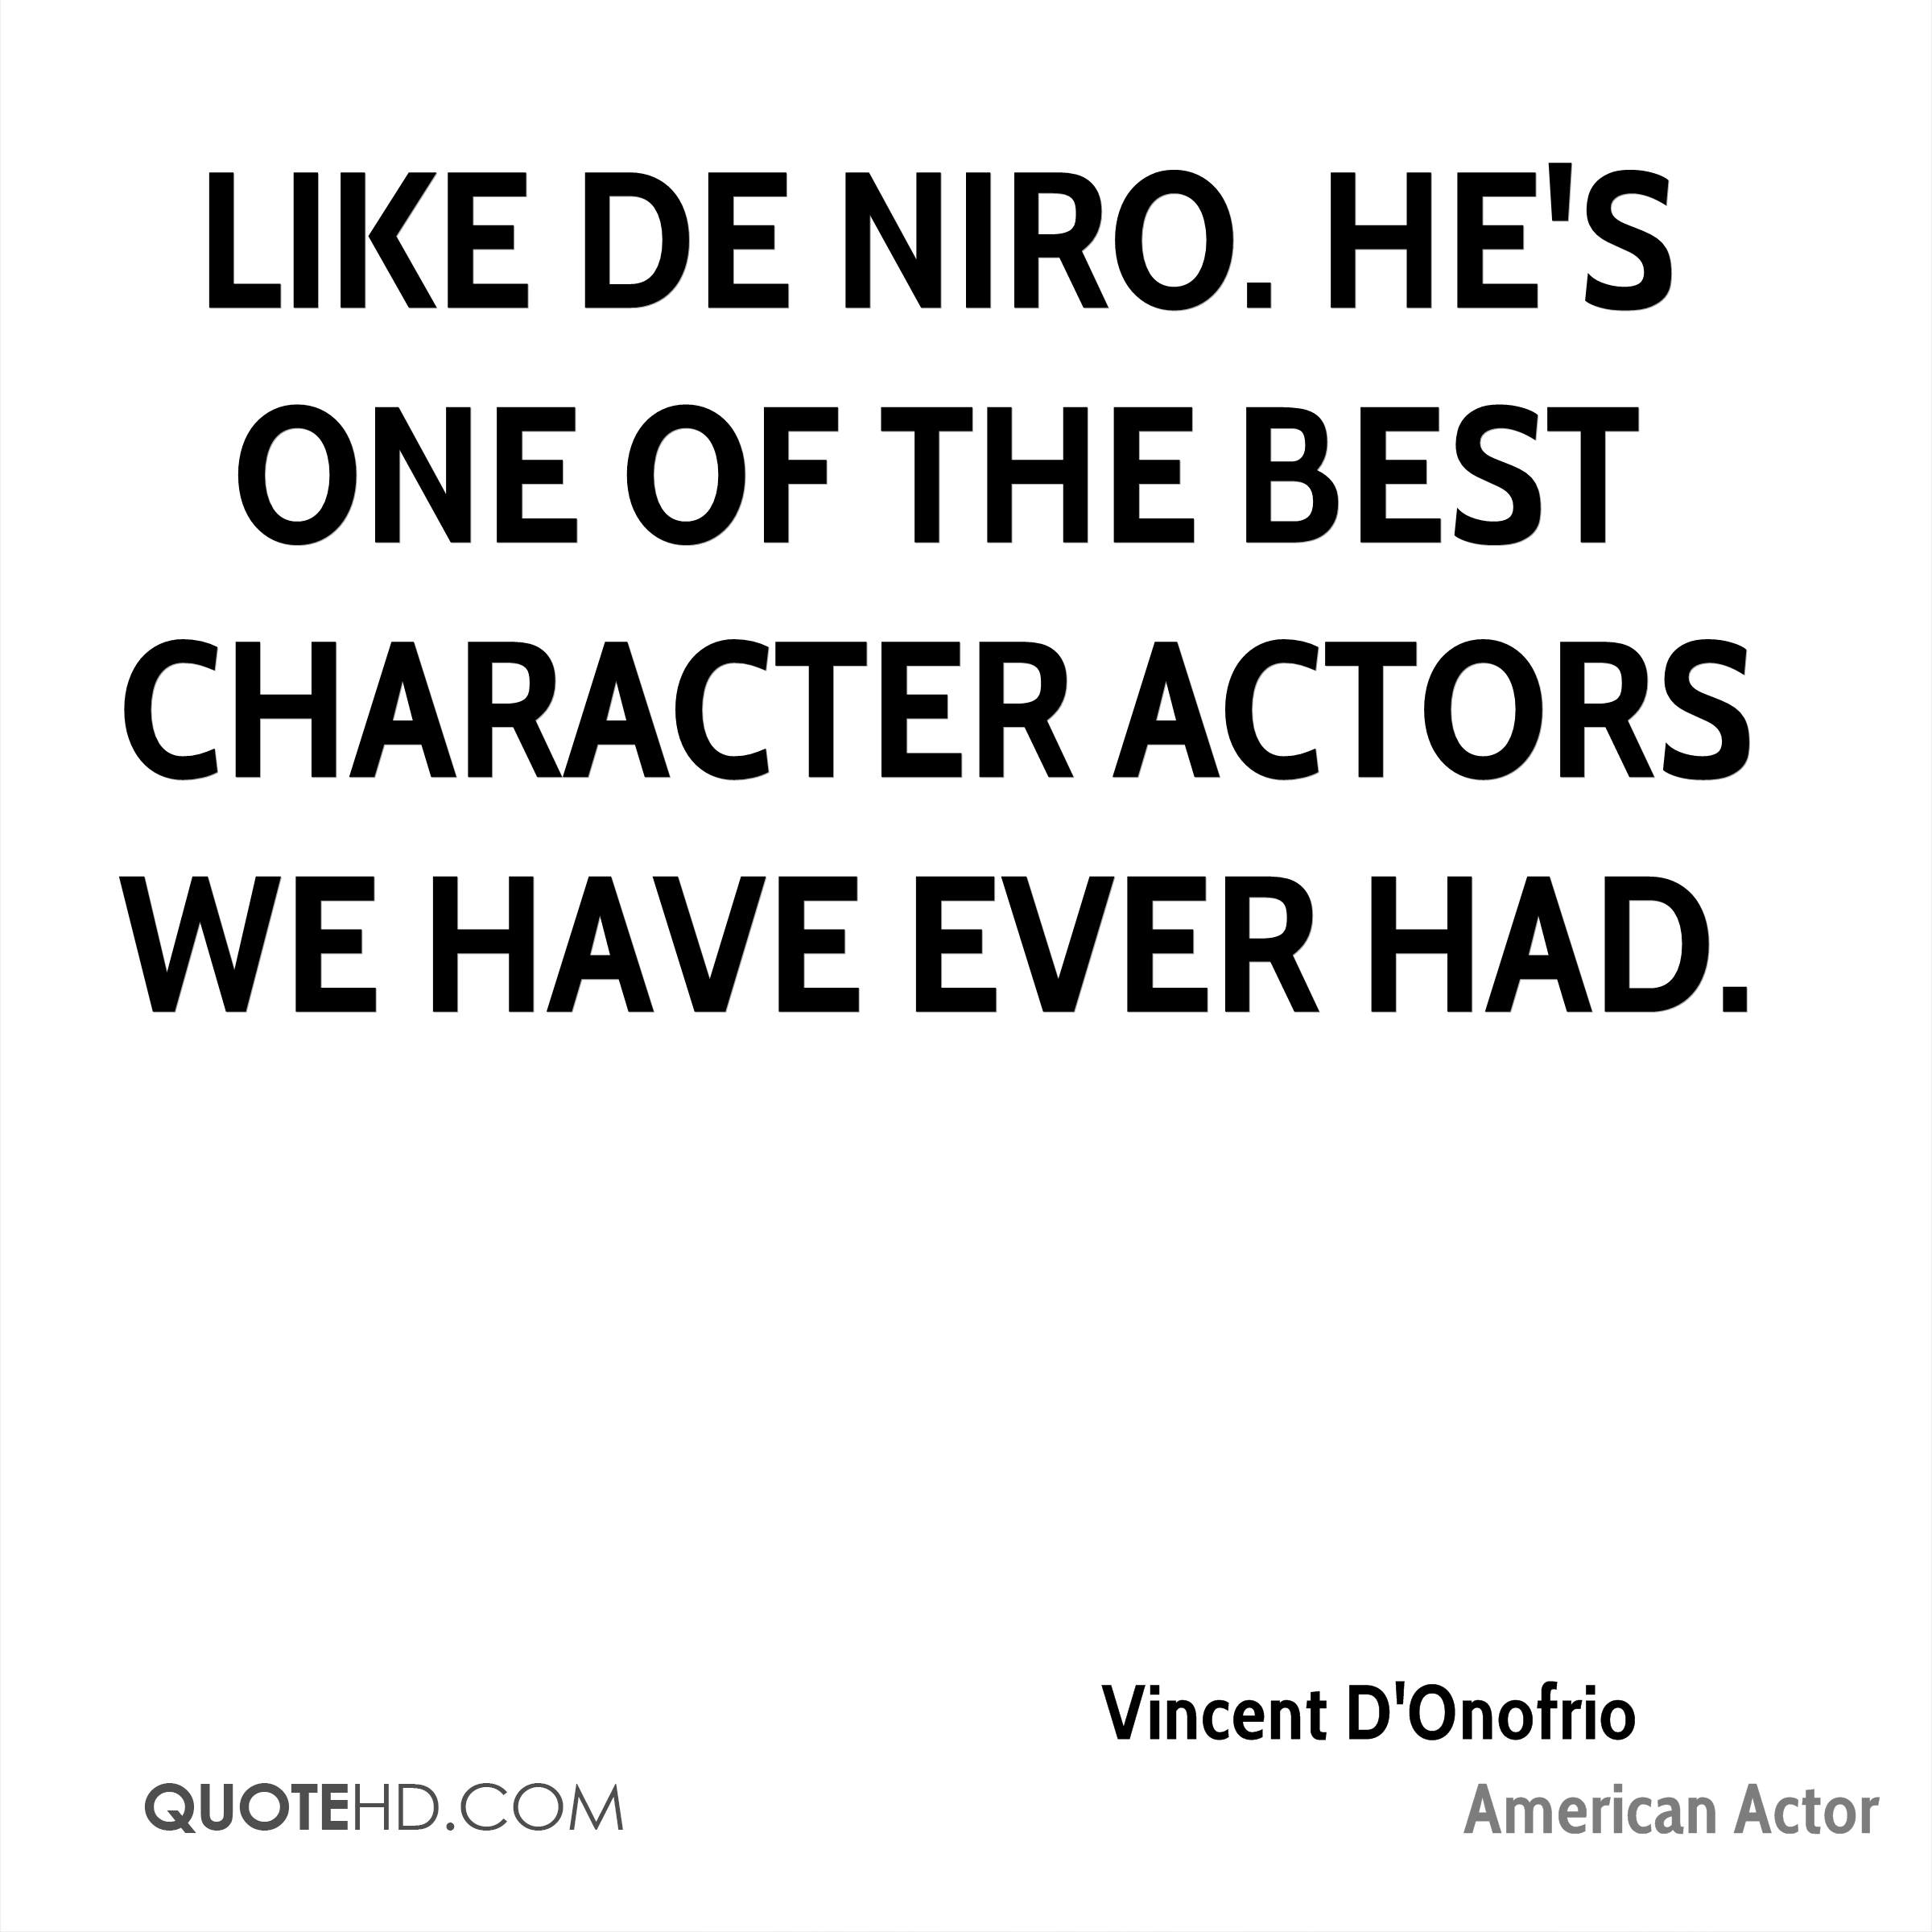 Like De Niro. He's one of the best character actors we have ever had.